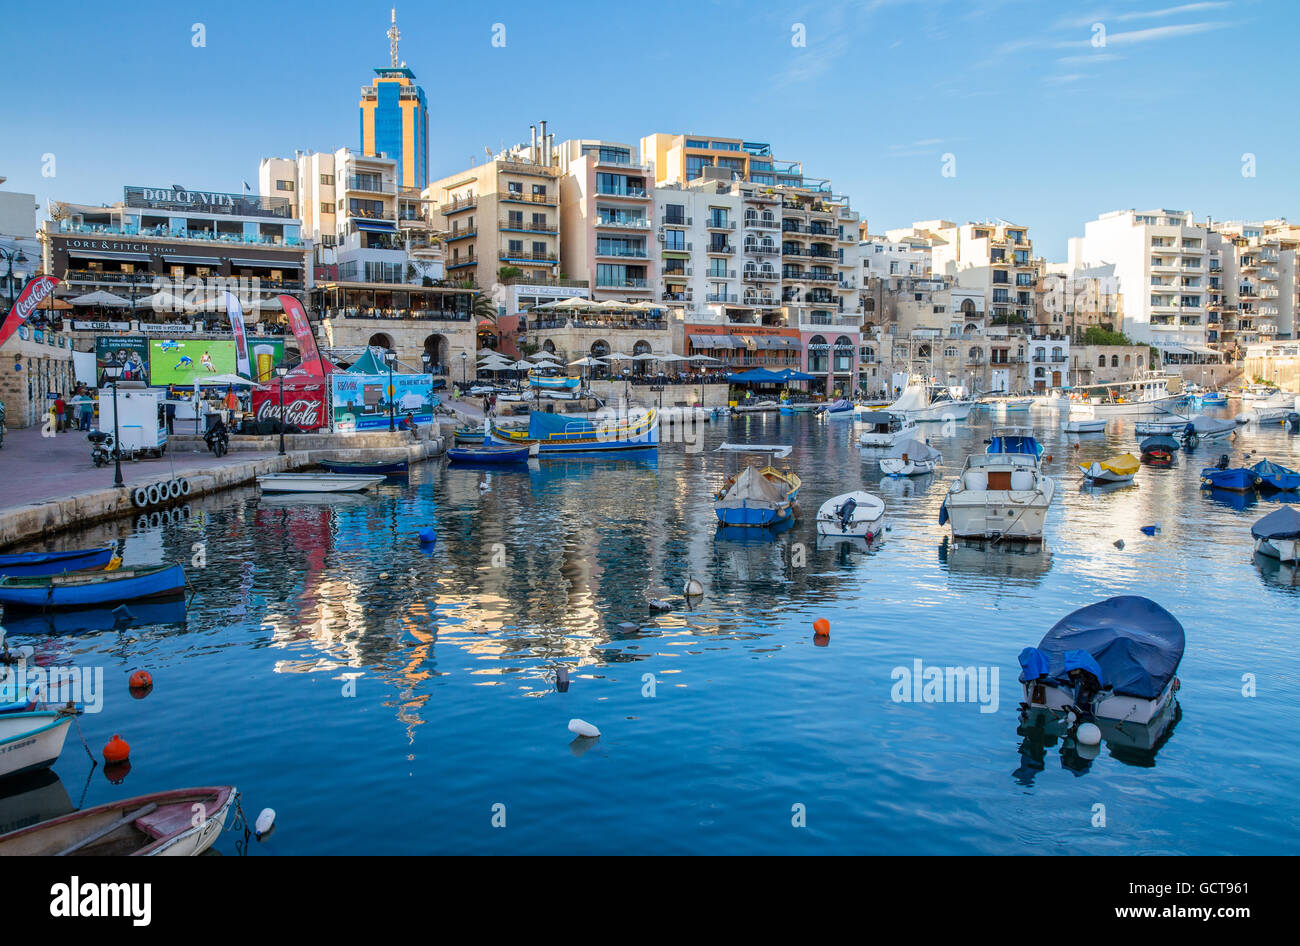 Spinola bay area of St.Julian's Bay with bars restaurants and nightlife, Malta - Stock Image